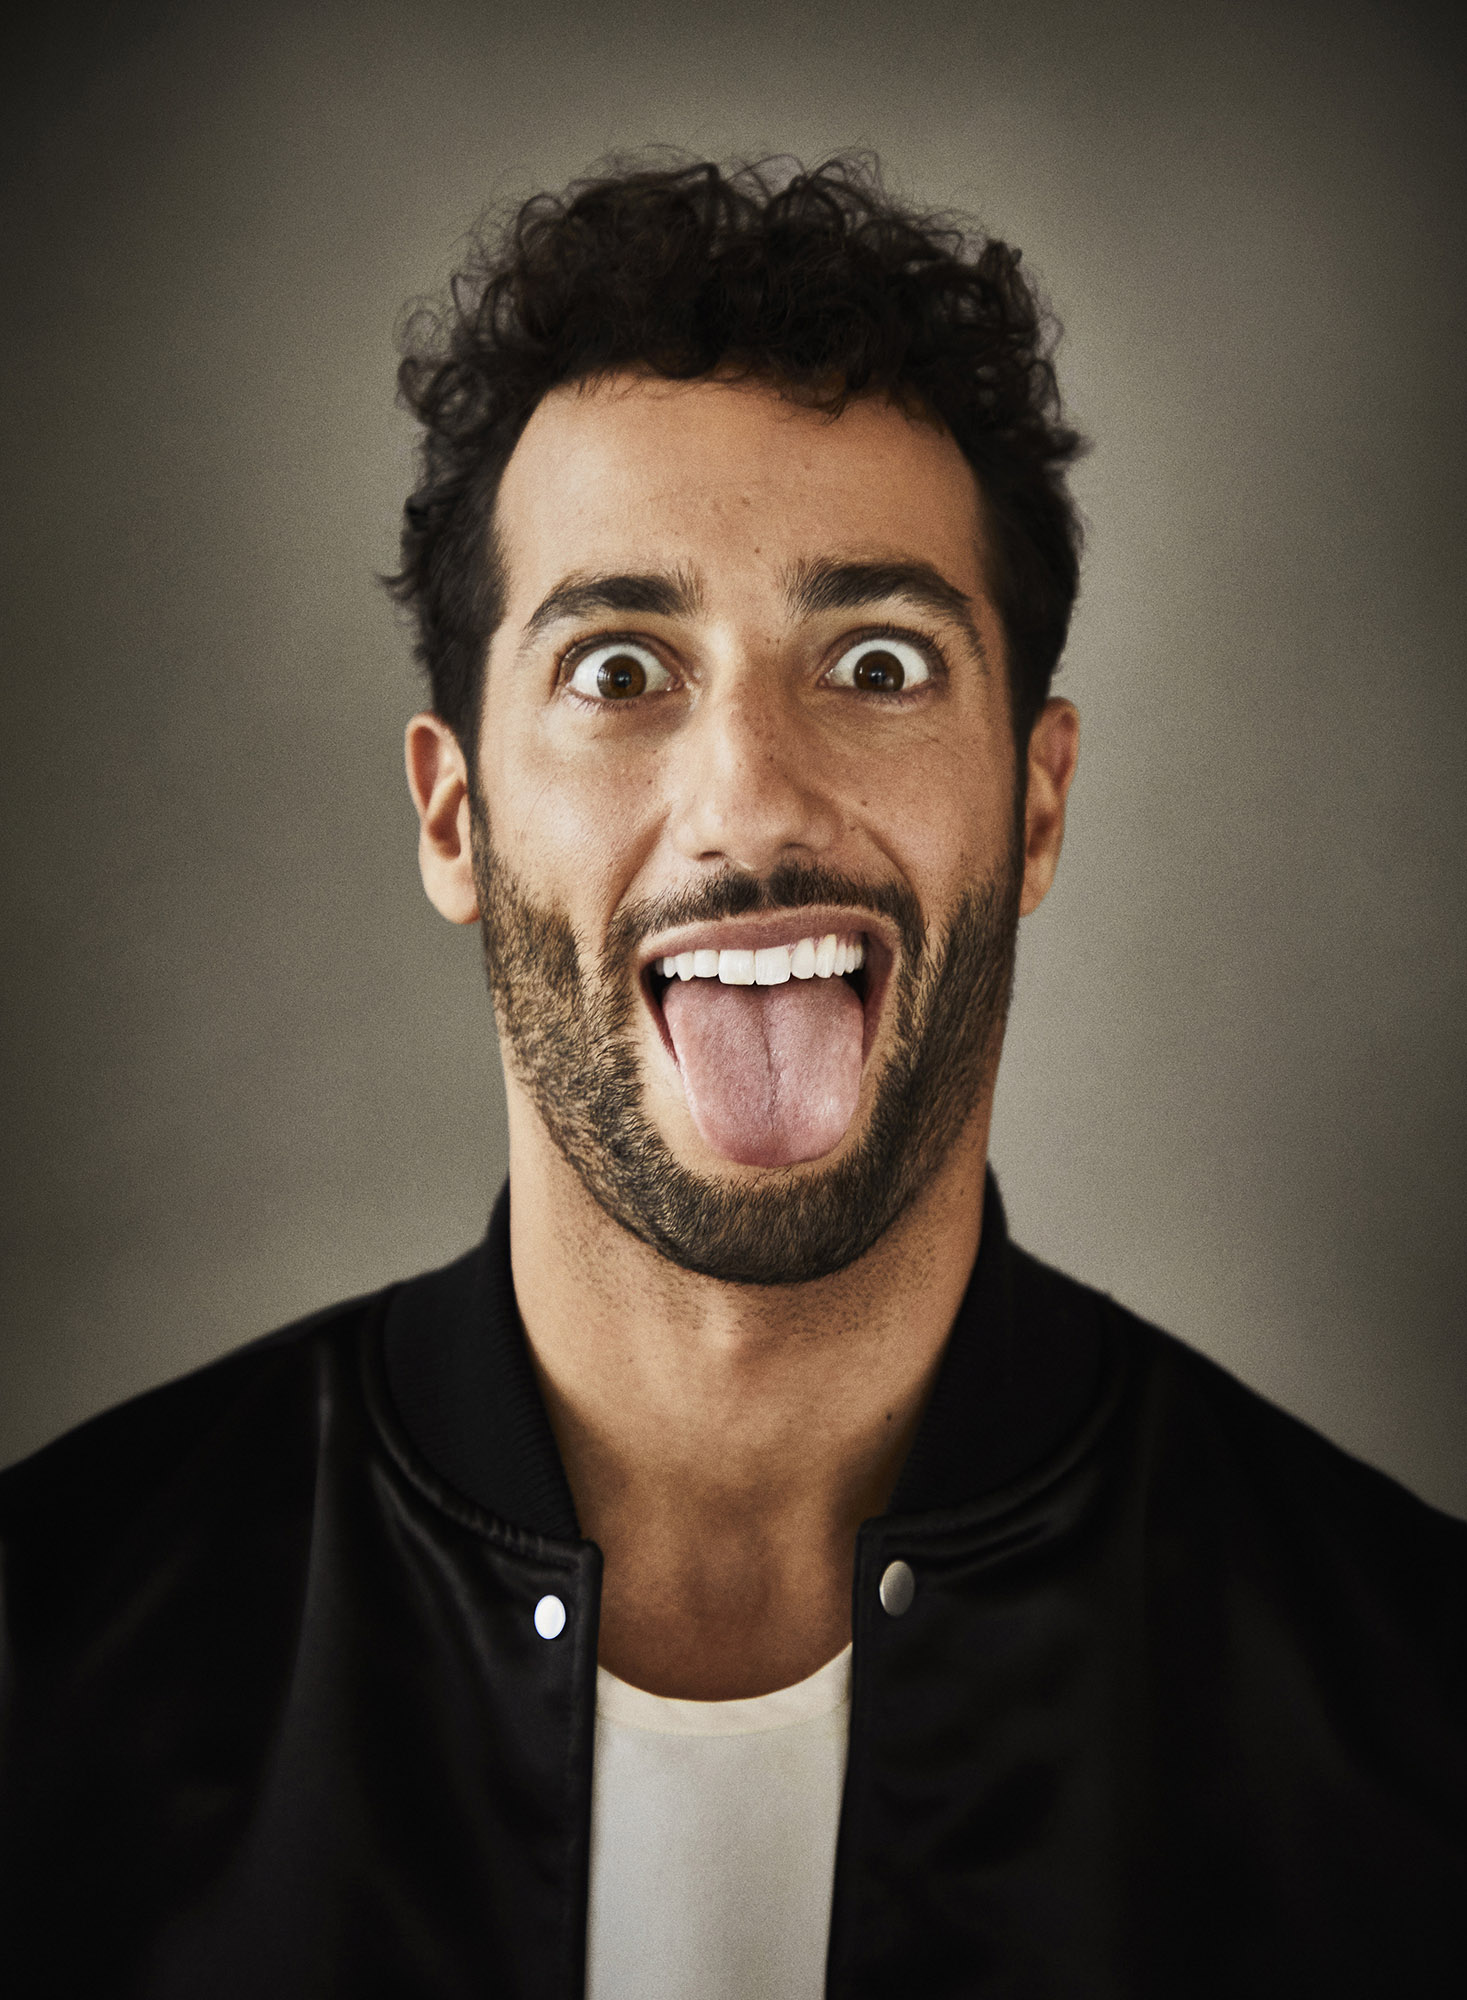 Daniel Ricciardo by David Needleman